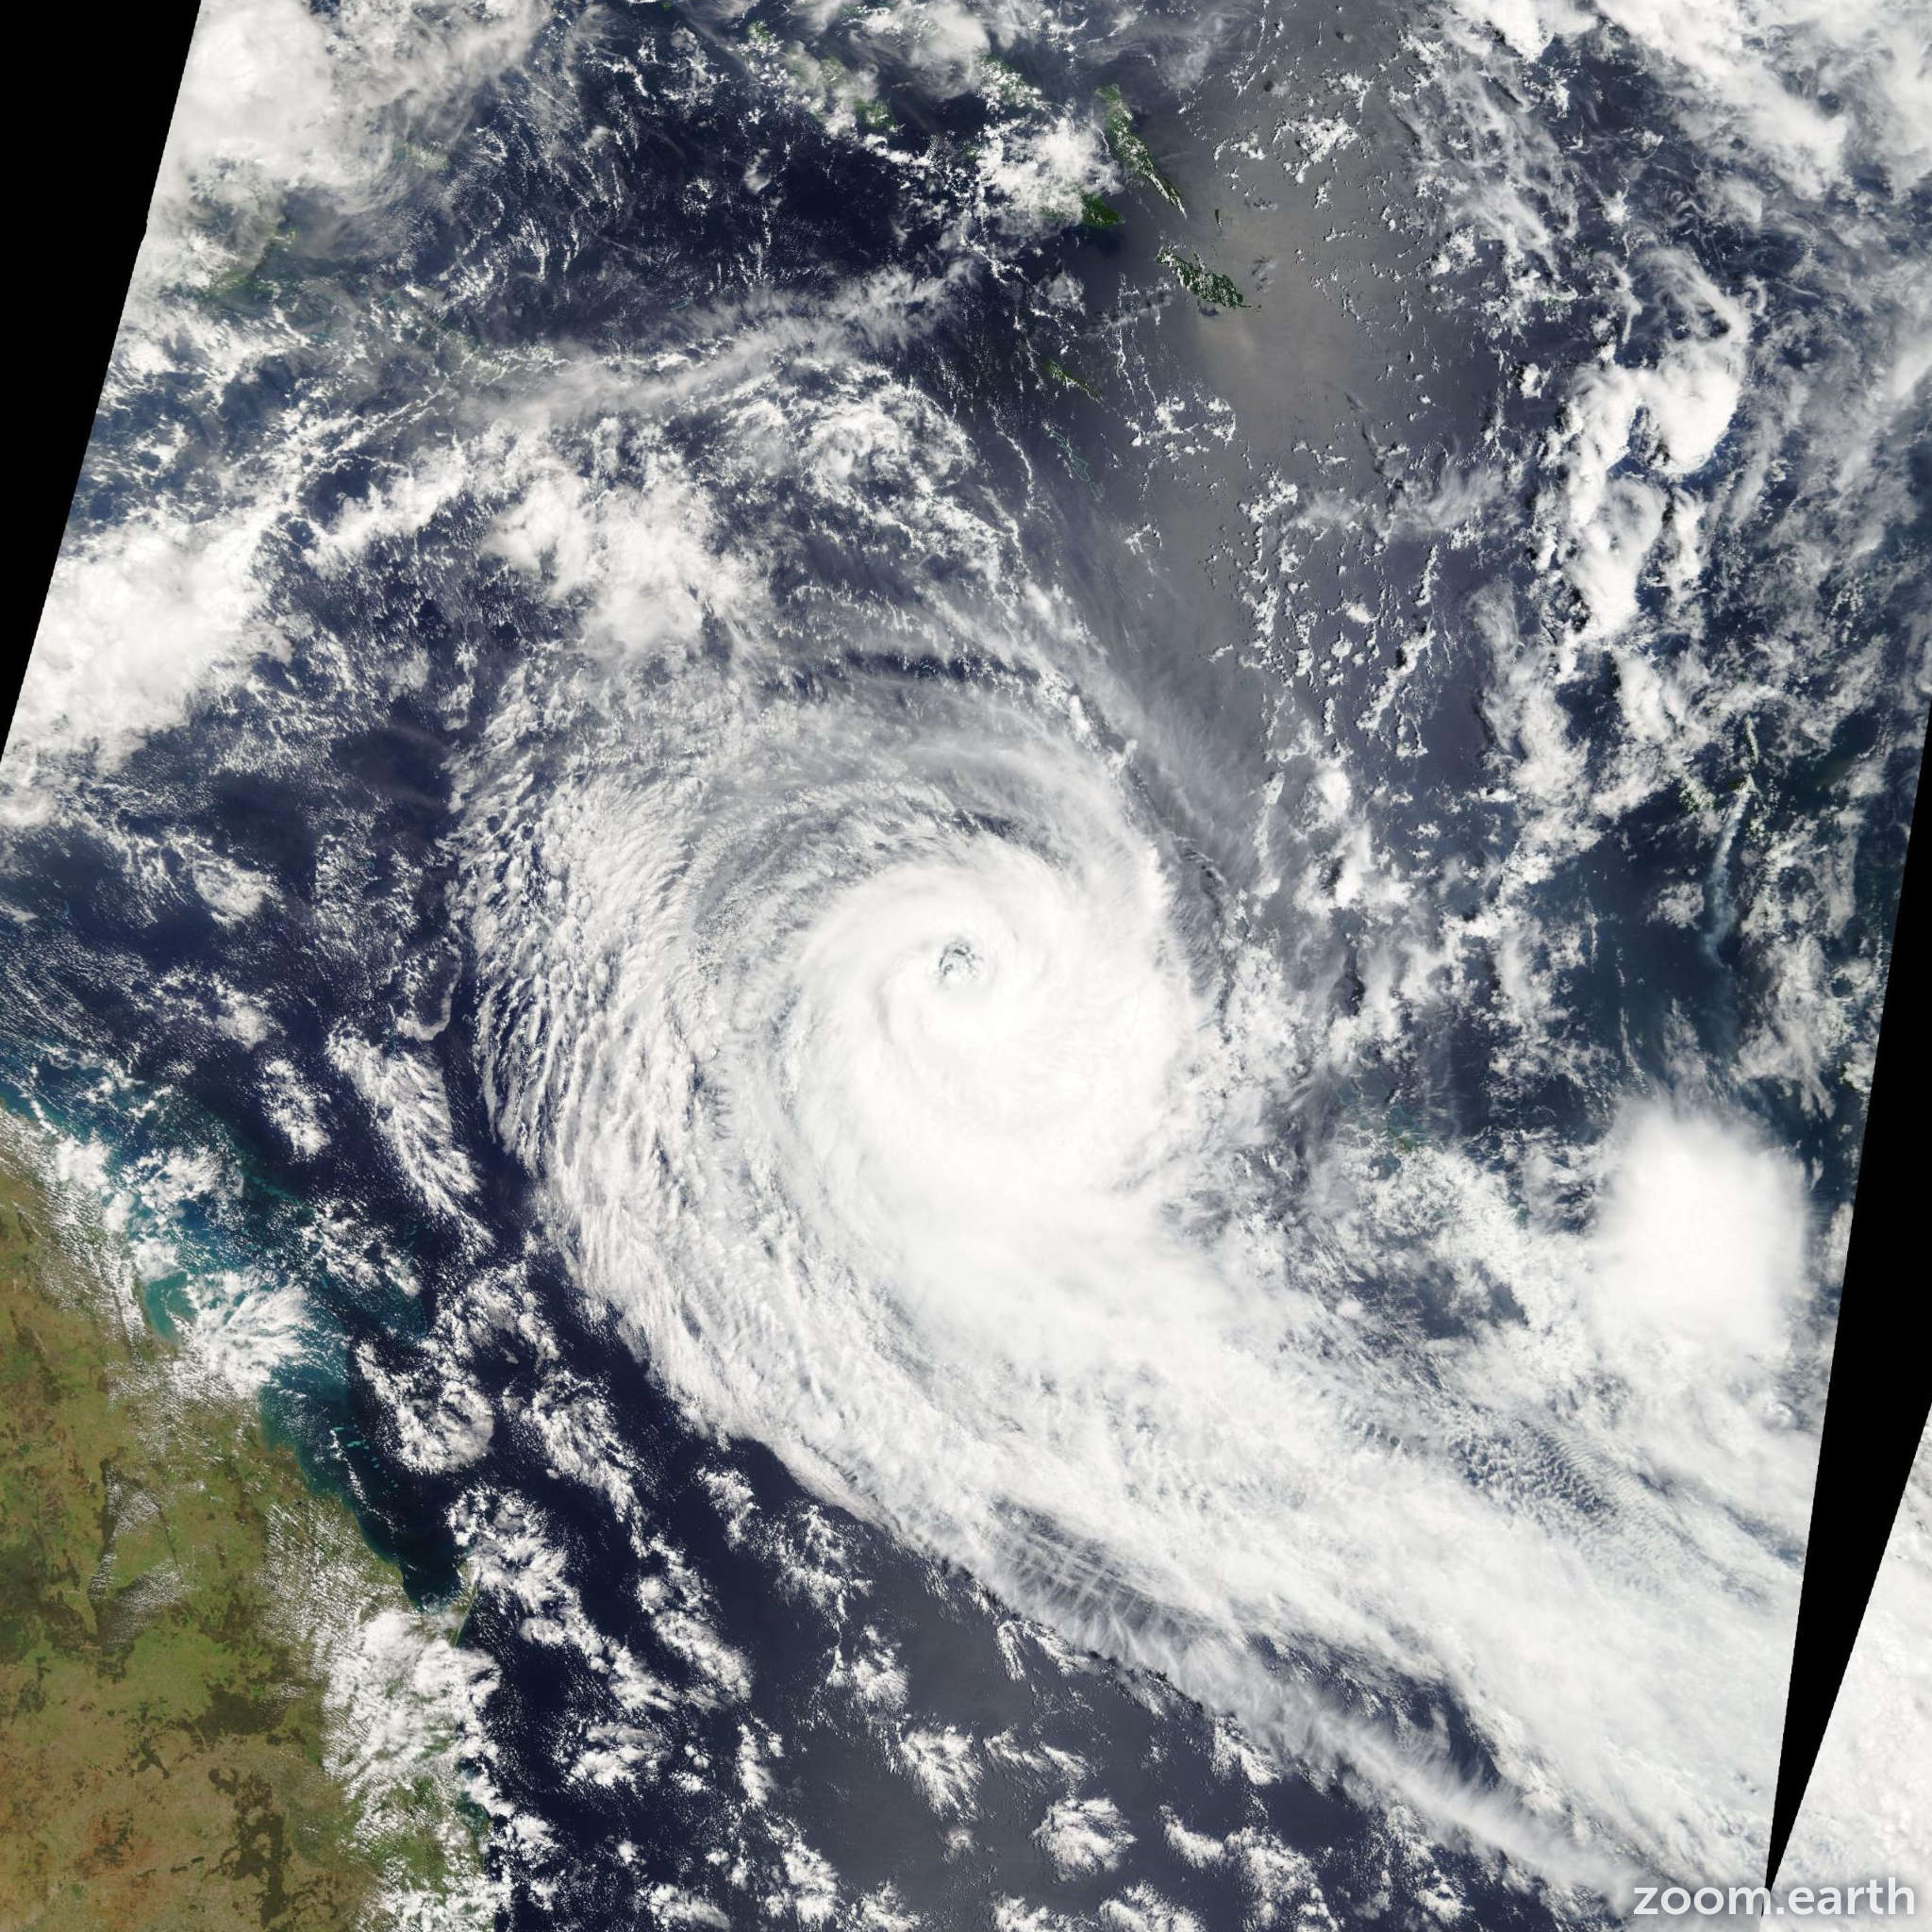 Satellite image of Cyclone Kerry 2005